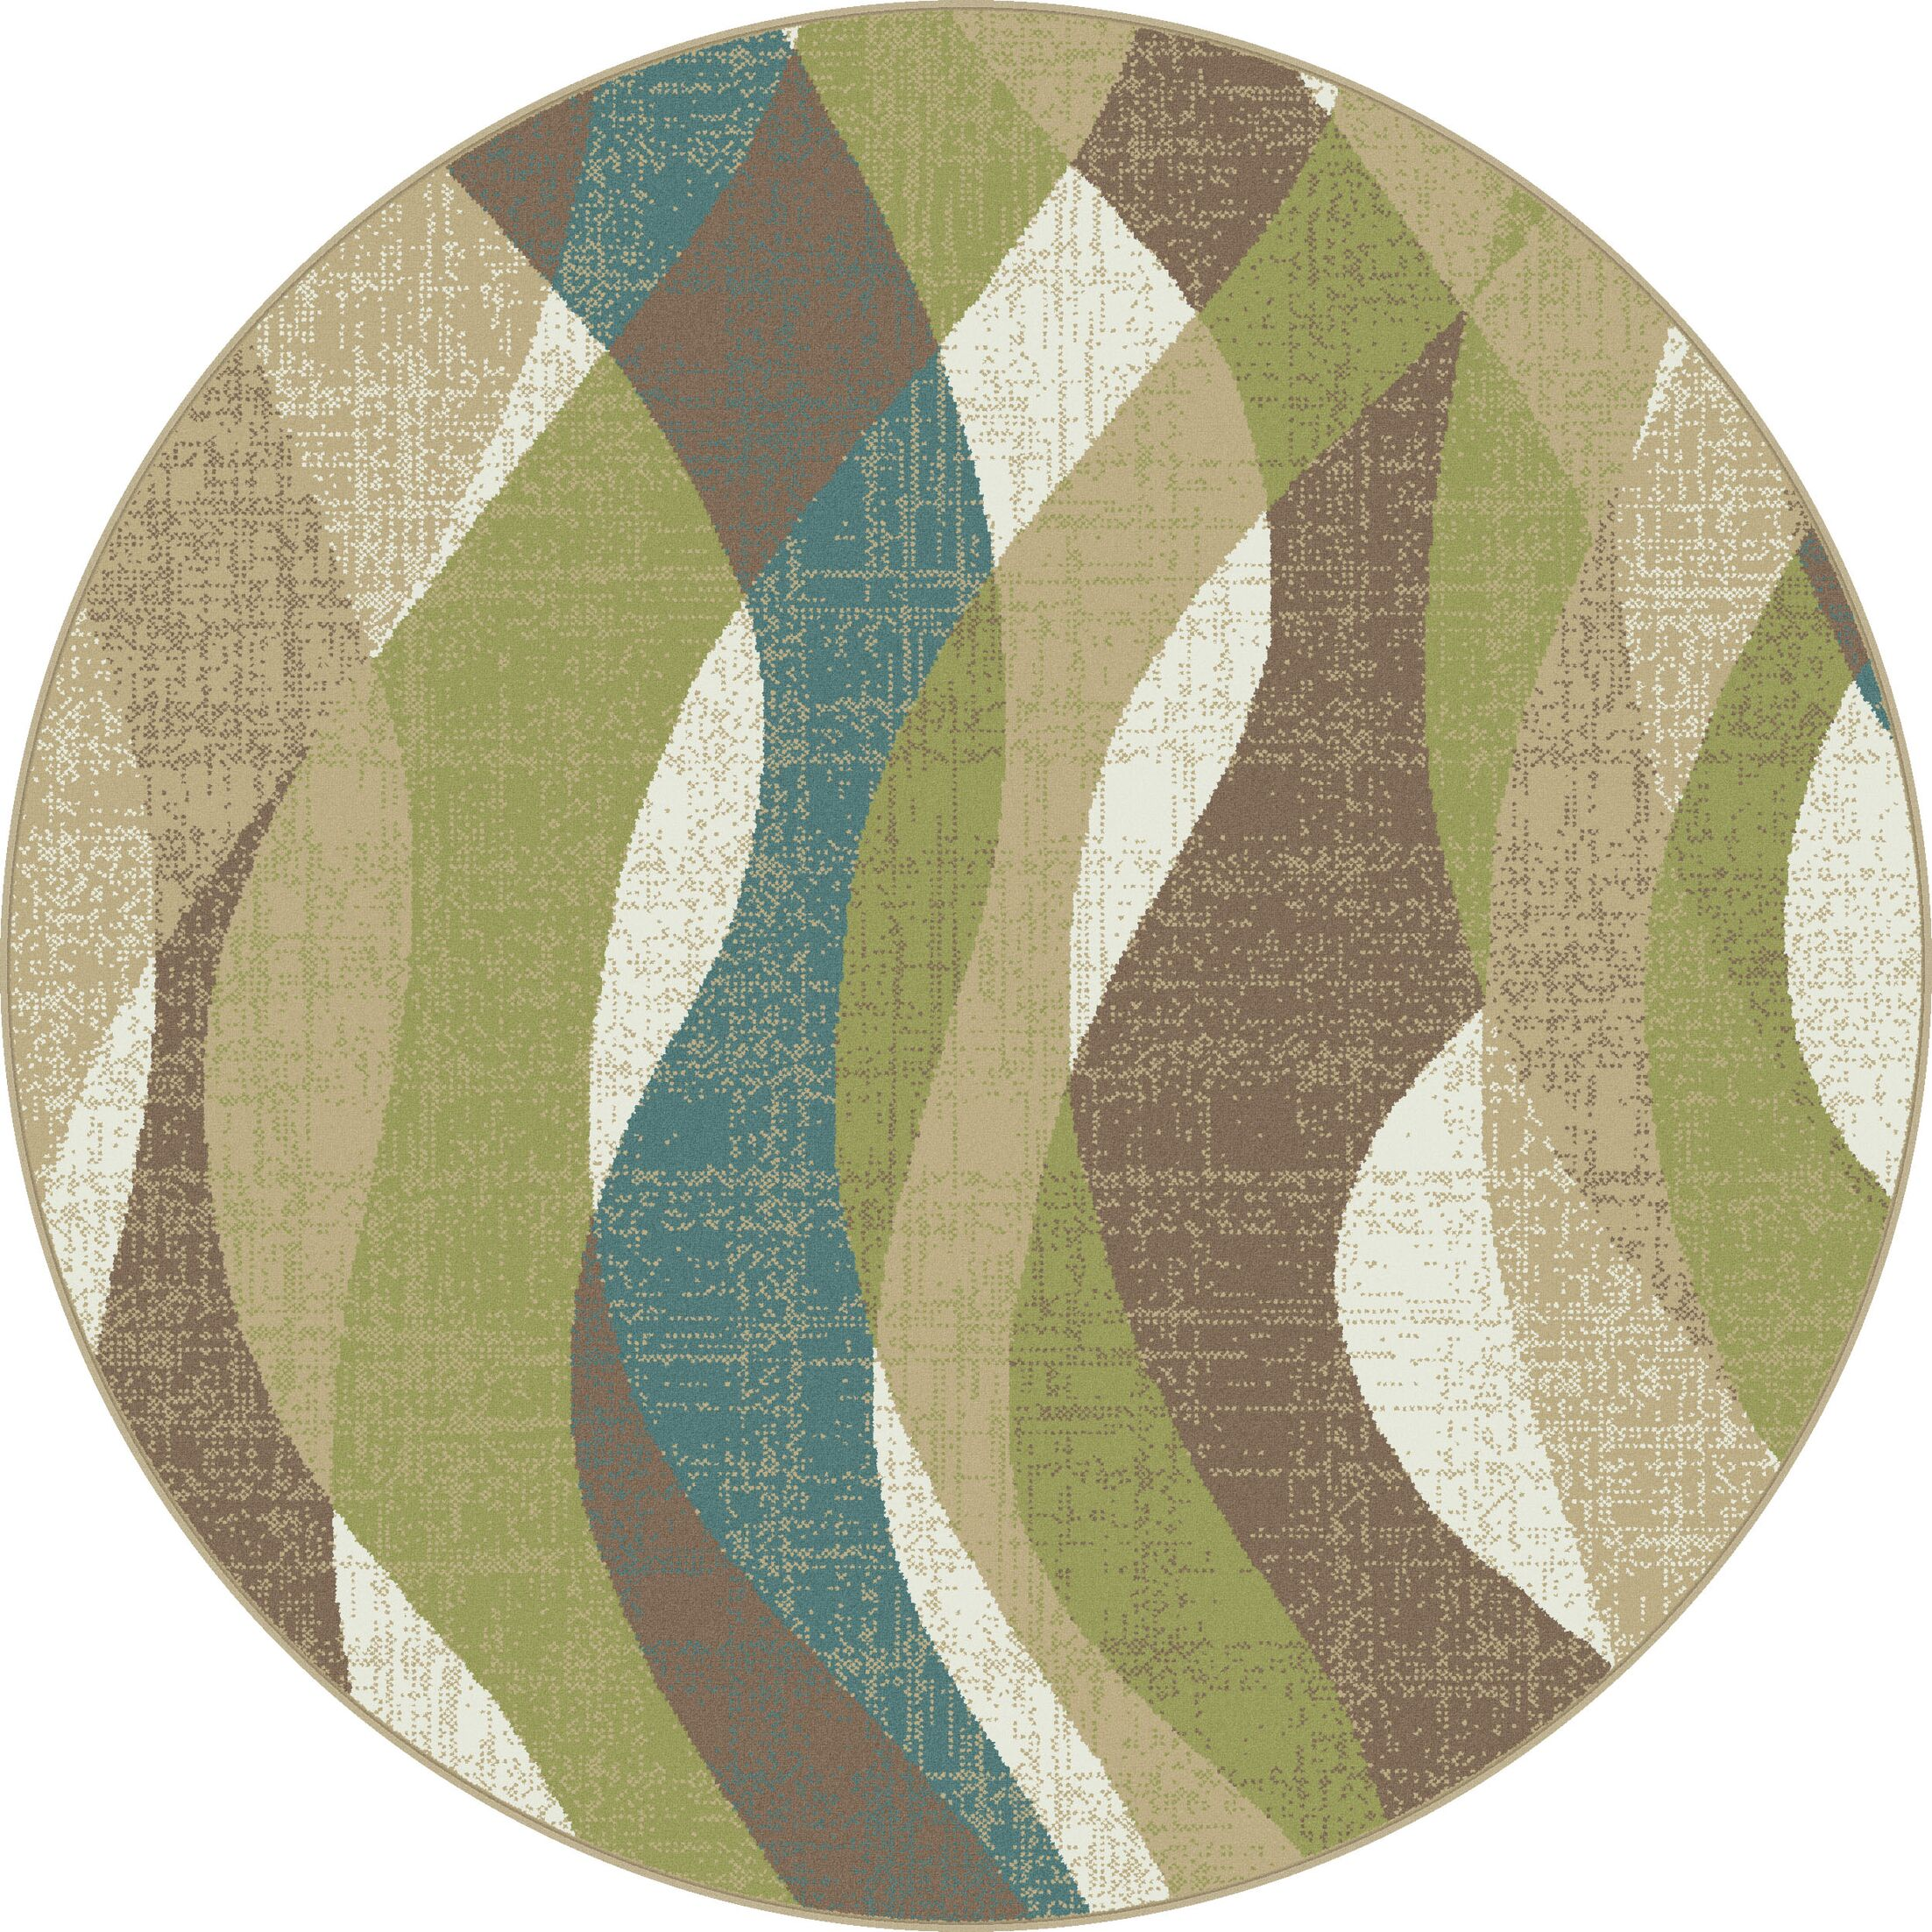 O'Malley Ivory Area Rug Rug Size: 5'3'' Round